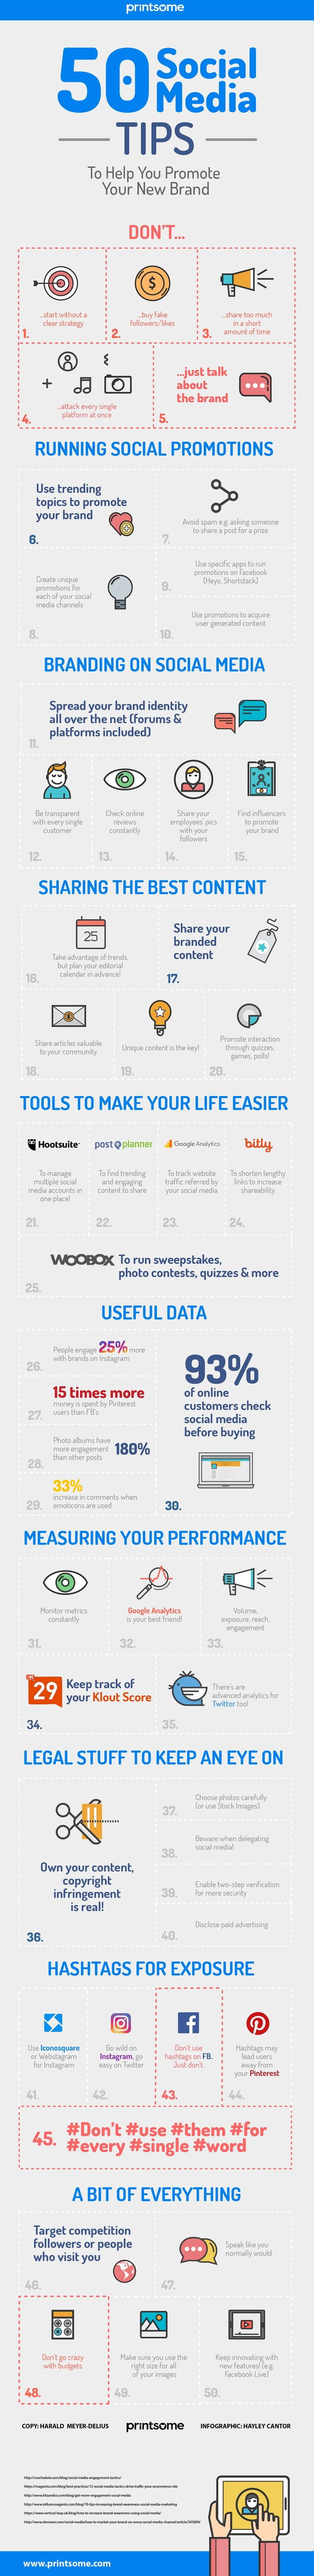 50 Social Media Tips to Help You Promote Your New Brand - #infographic #socialmedia